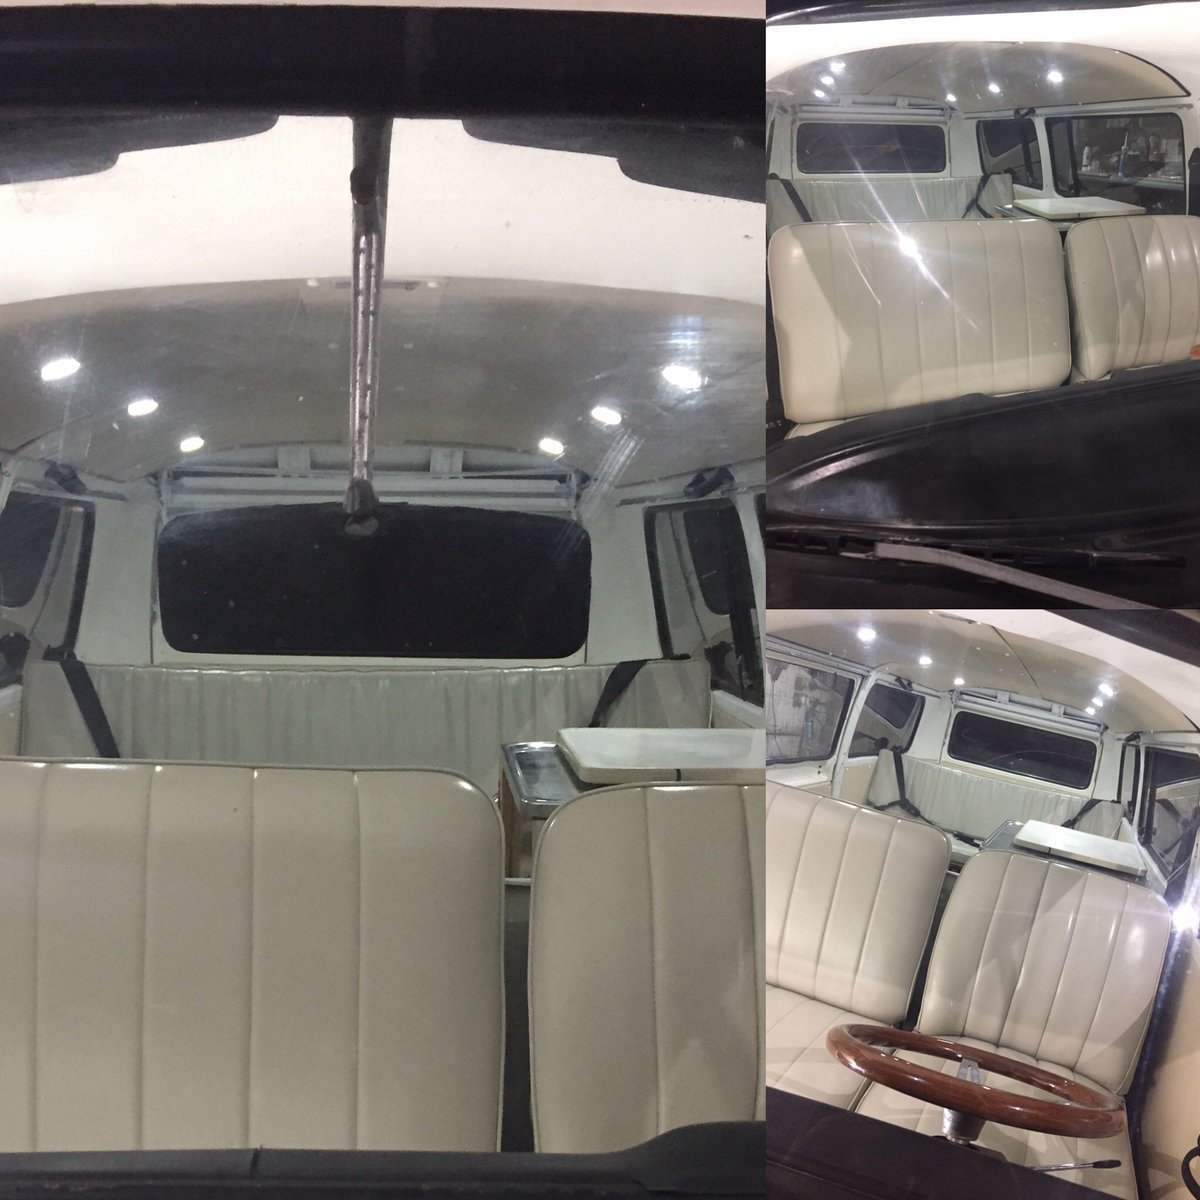 1968 VW t2 early bay window campervan lhd For Sale (picture 9 of 9)